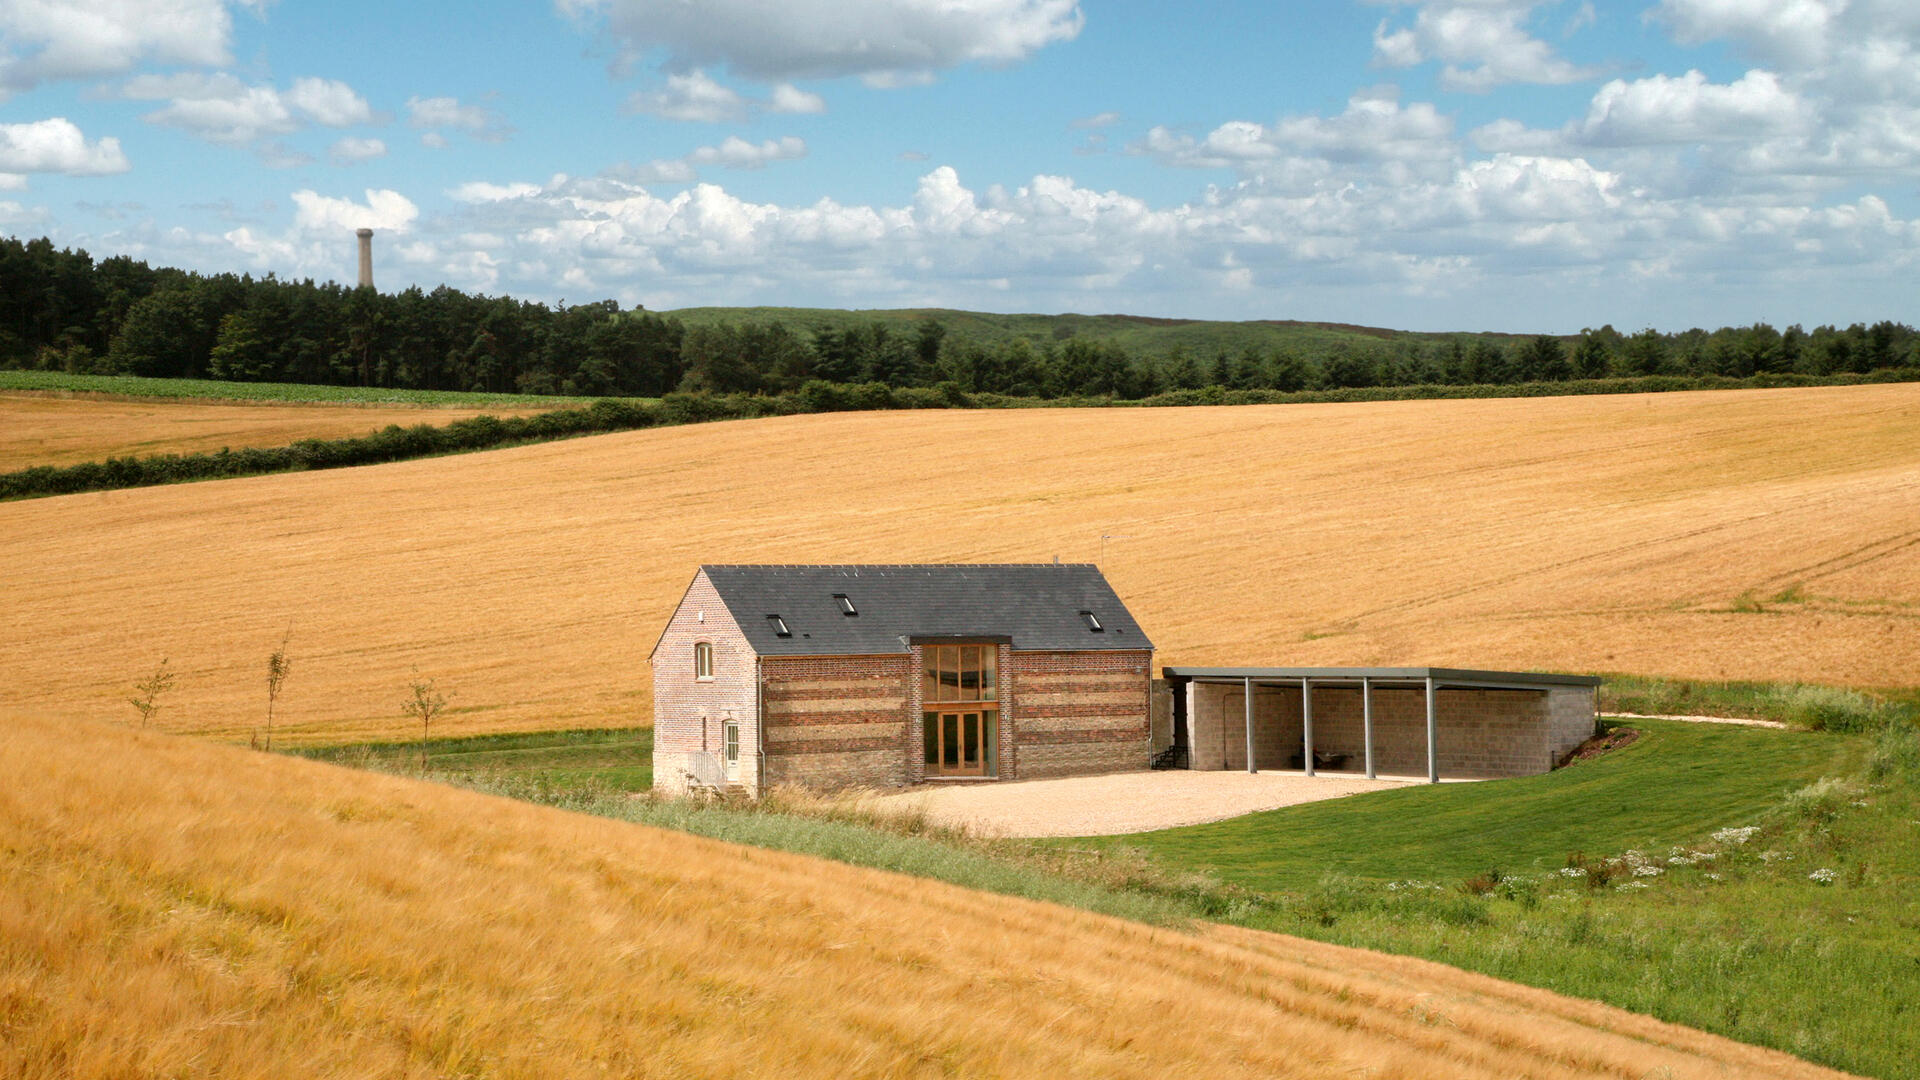 3 Bedroom Barn conversion in Dorset, United Kingdom